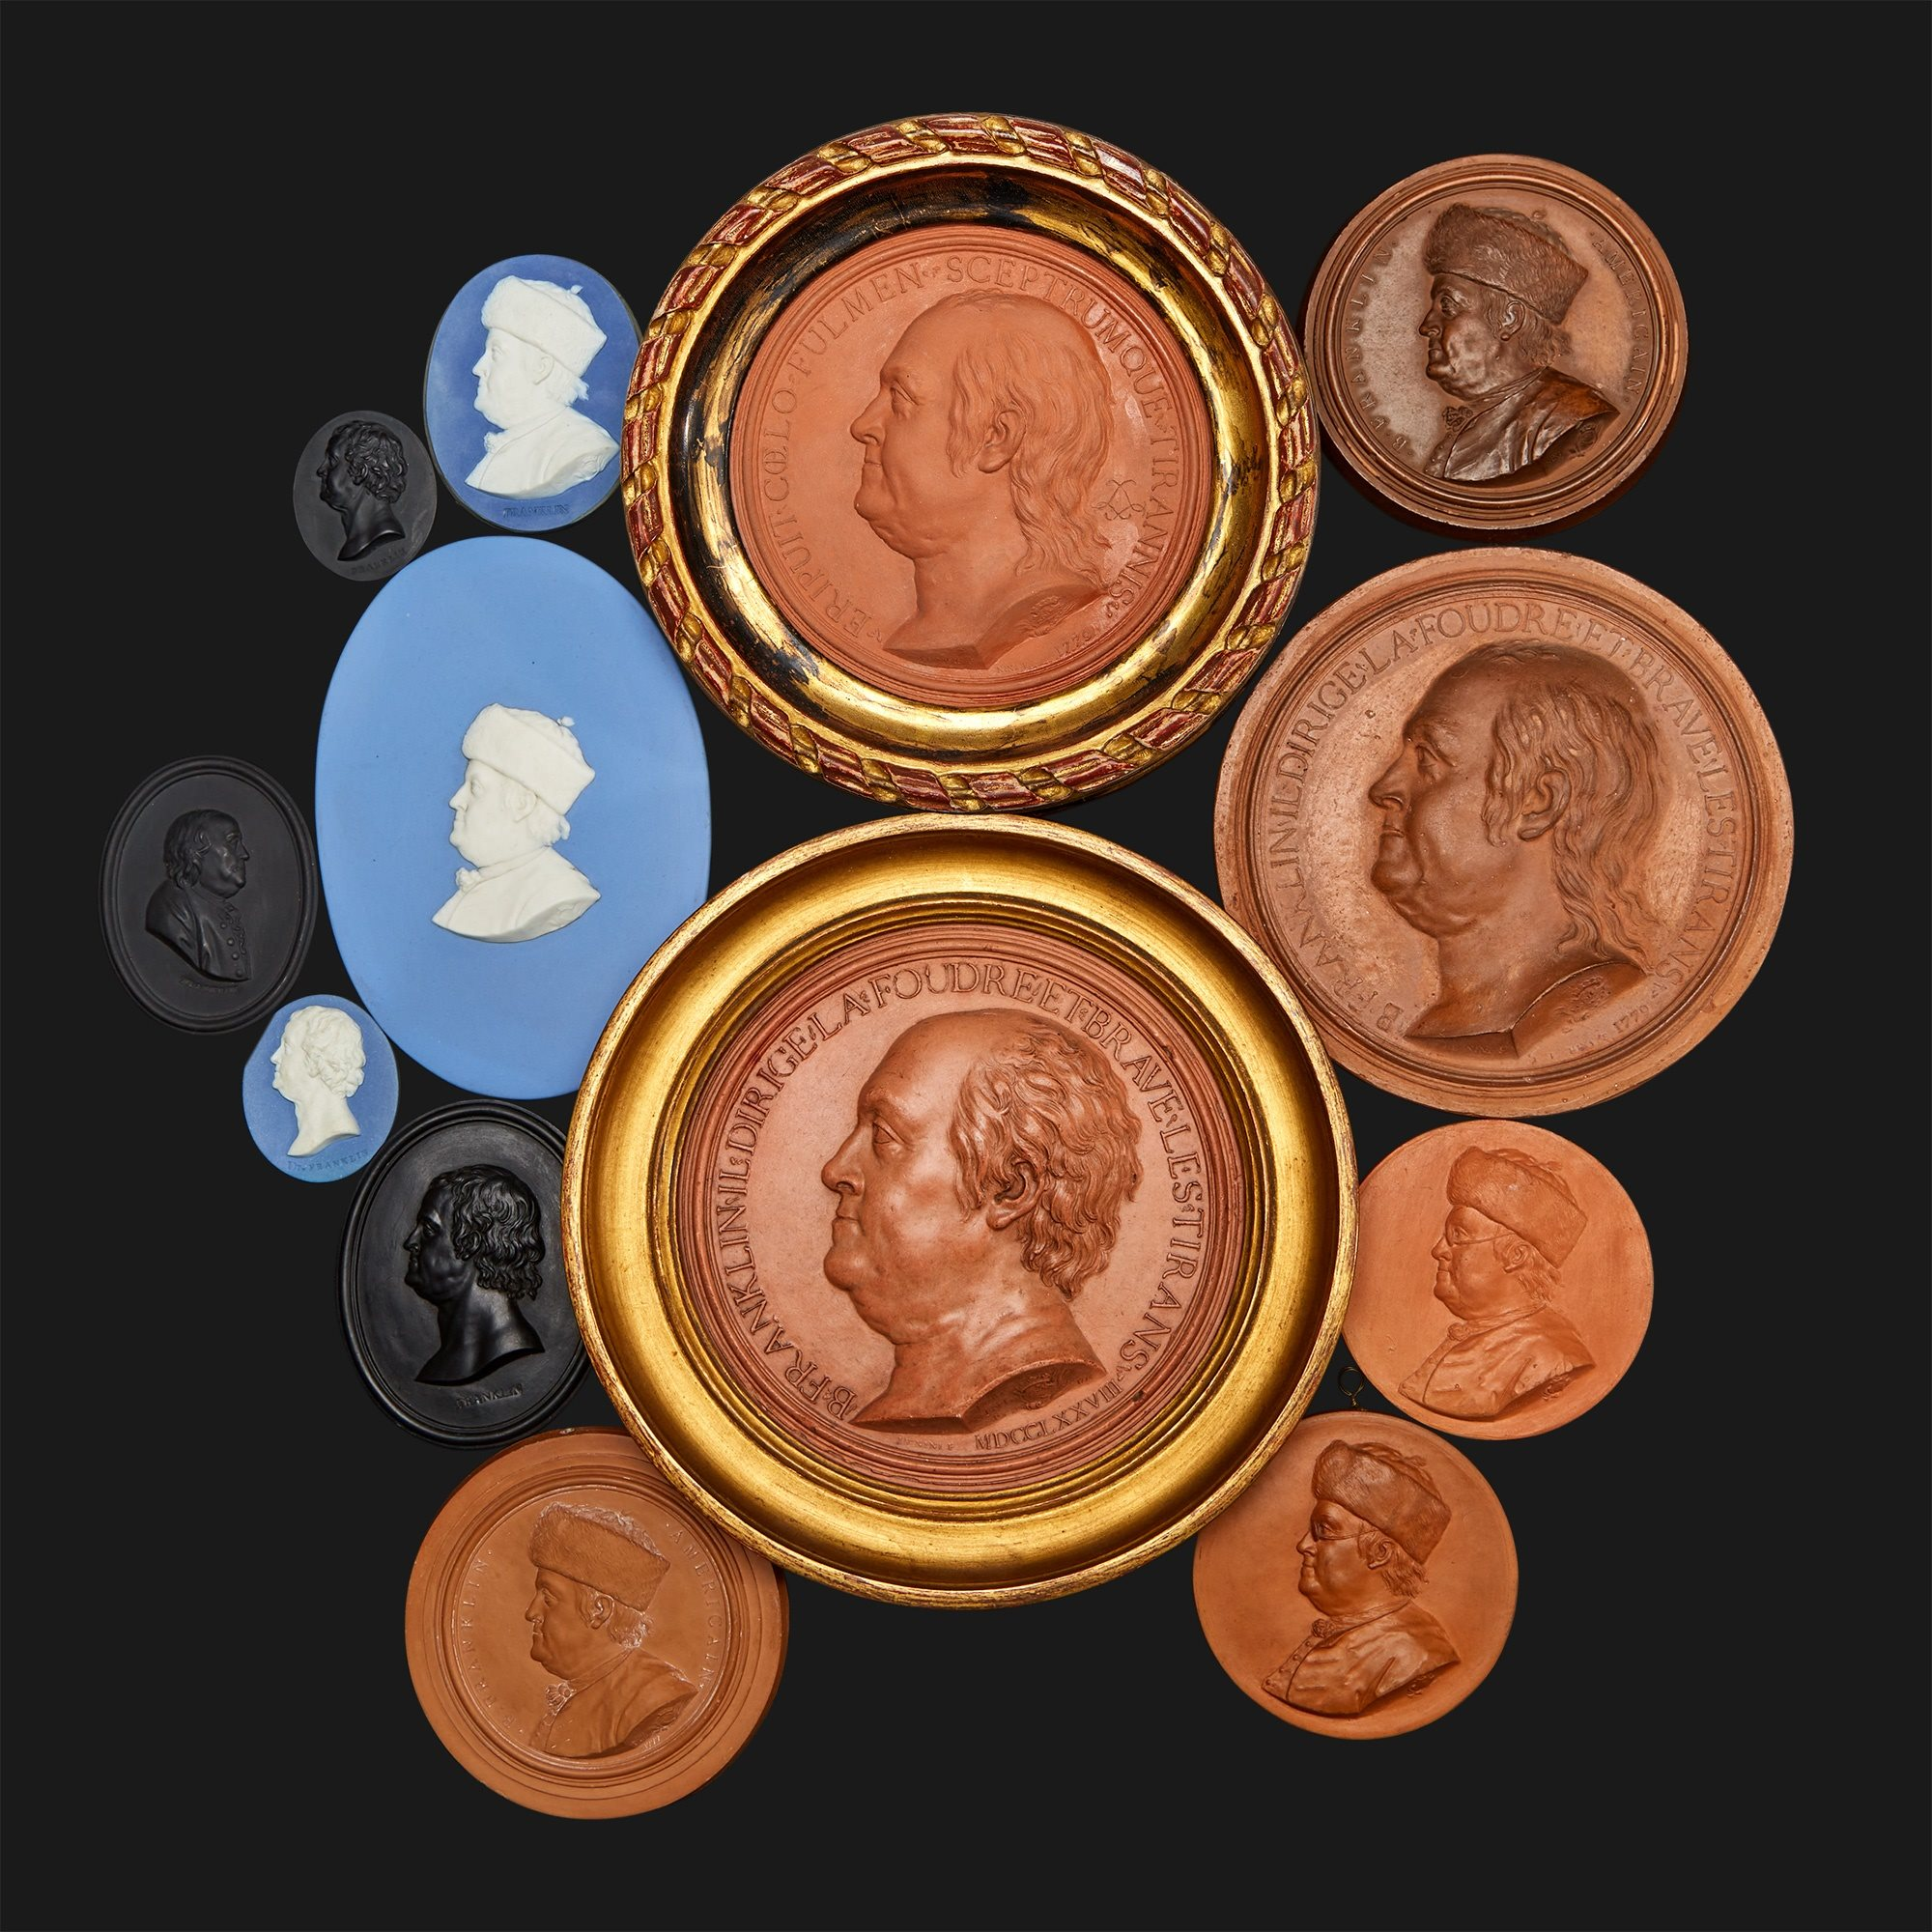 a collection of clay portrait medallions depicting Benjamin Franklin